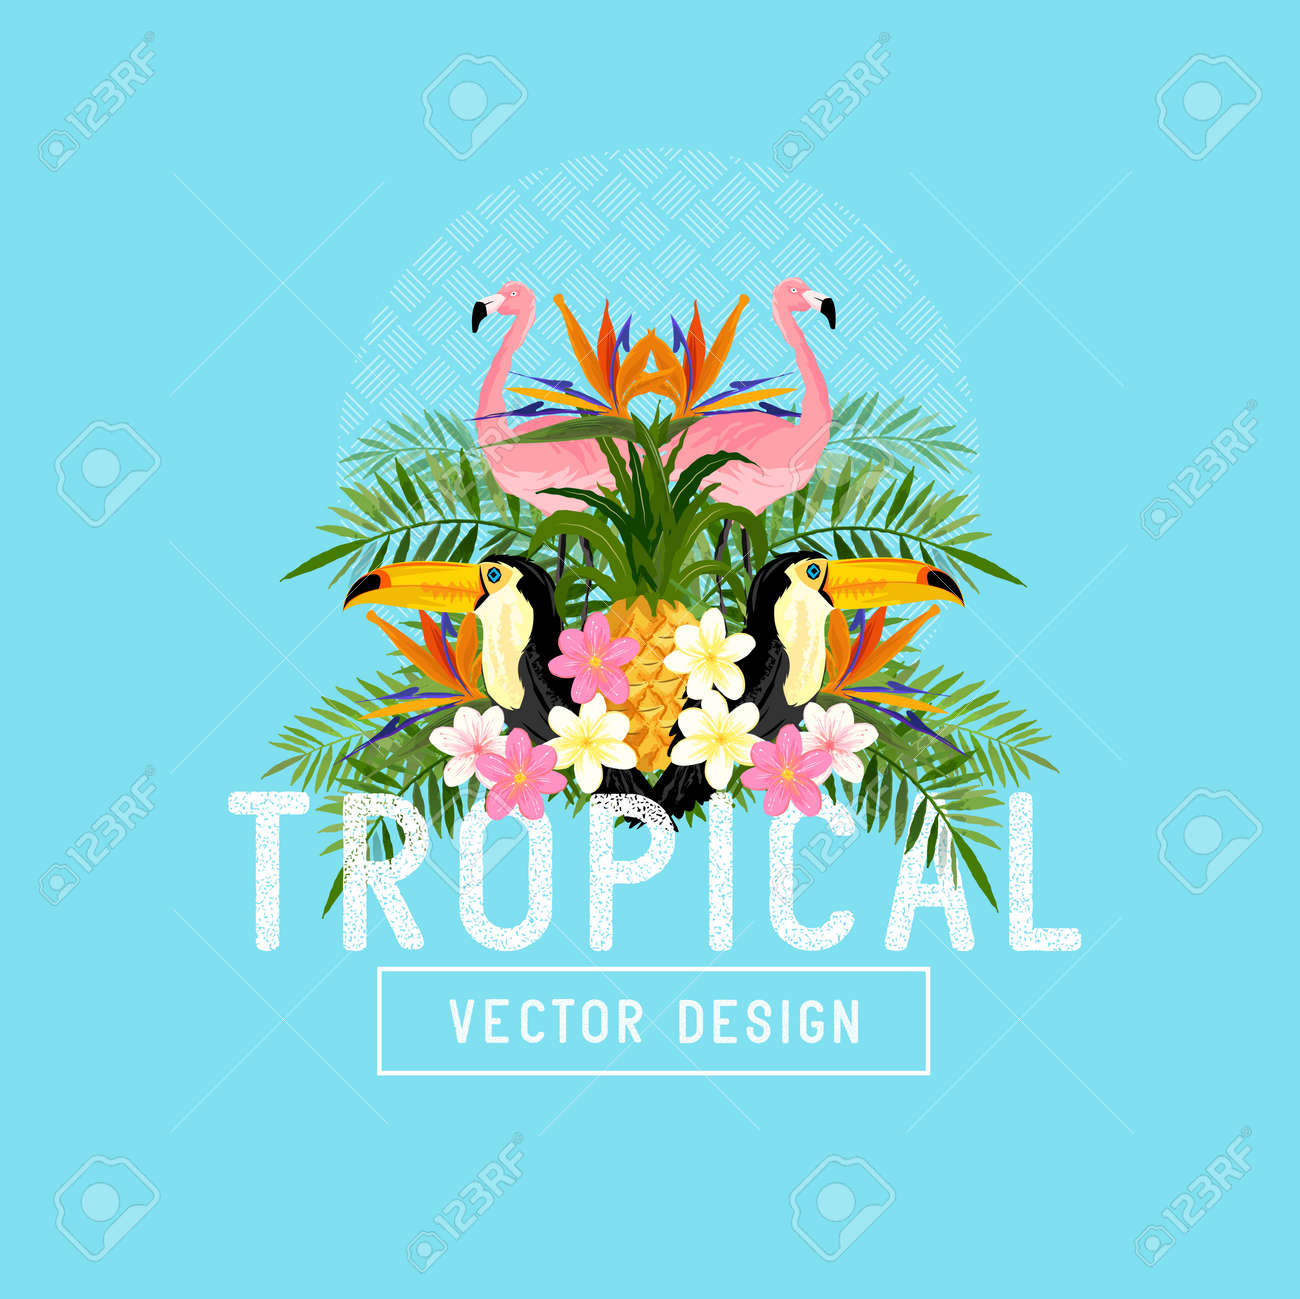 Tropical Summer Vector. Tropic elements including flamingos, Palms, Toucans, Bird of paradise flowers and pineapples - 54312263